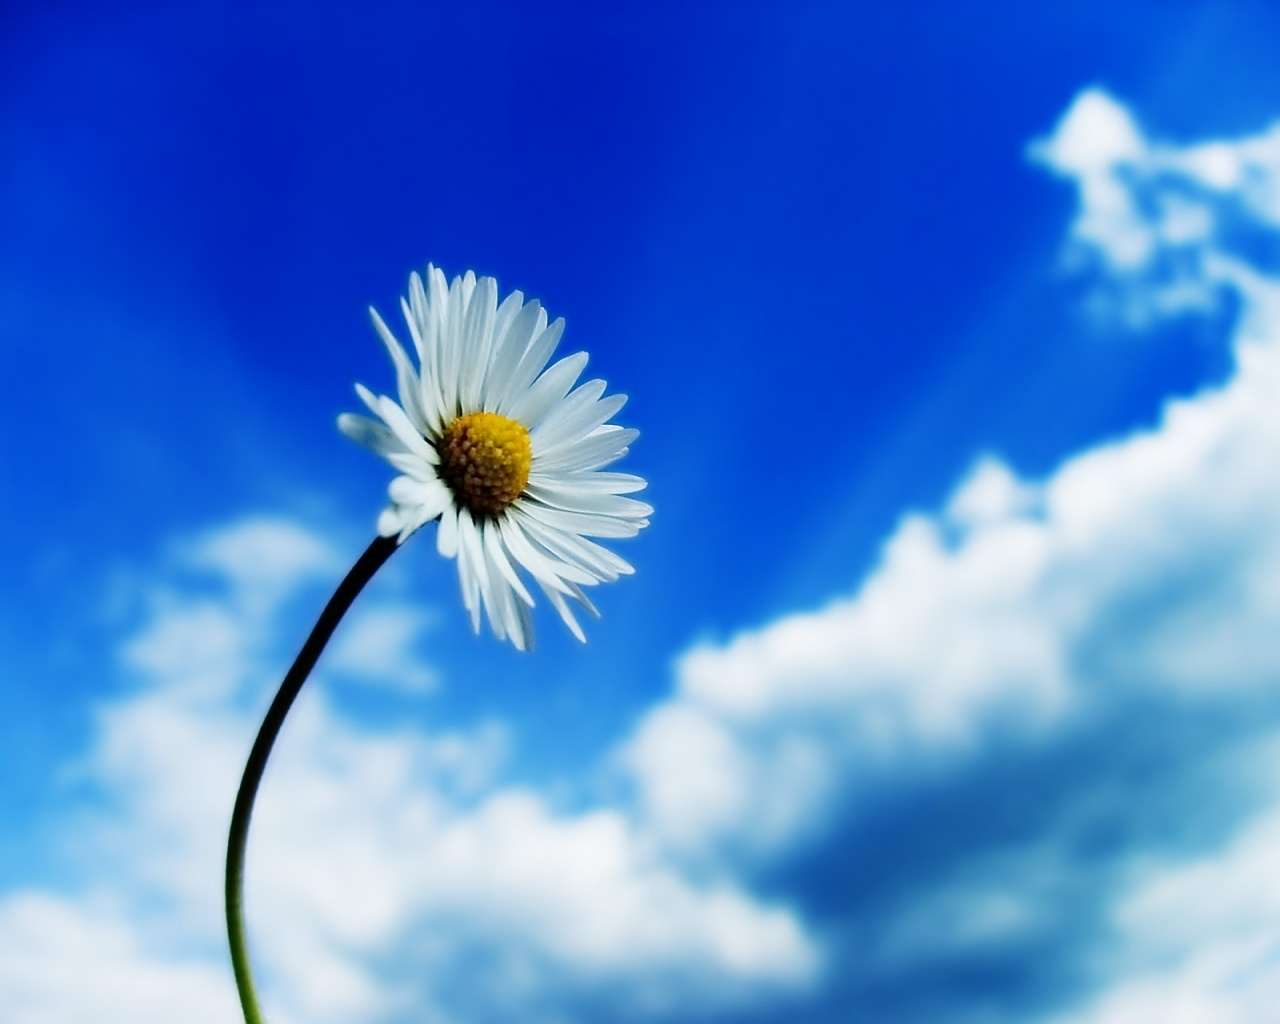 Bright Colors Images White Daisy Blue Sky Hd Wallpaper And